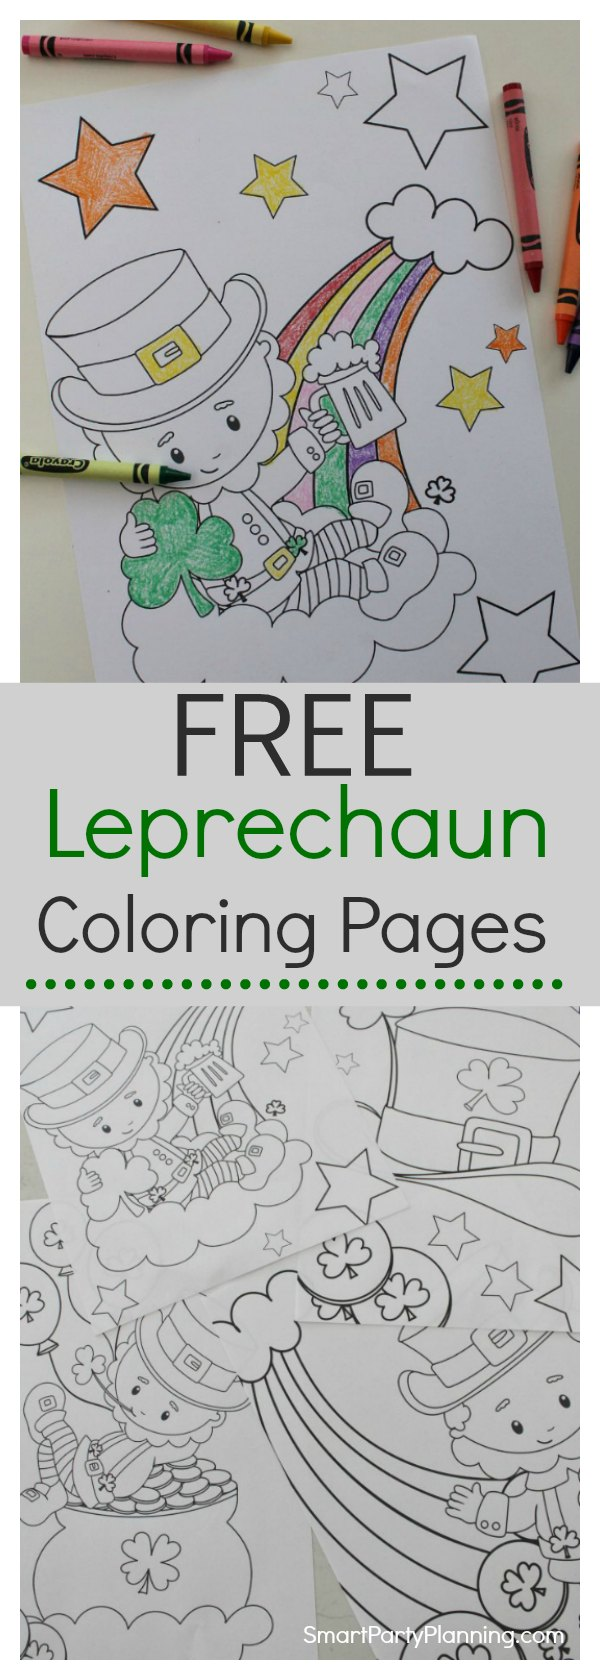 Free Leprechaun Coloring Pages